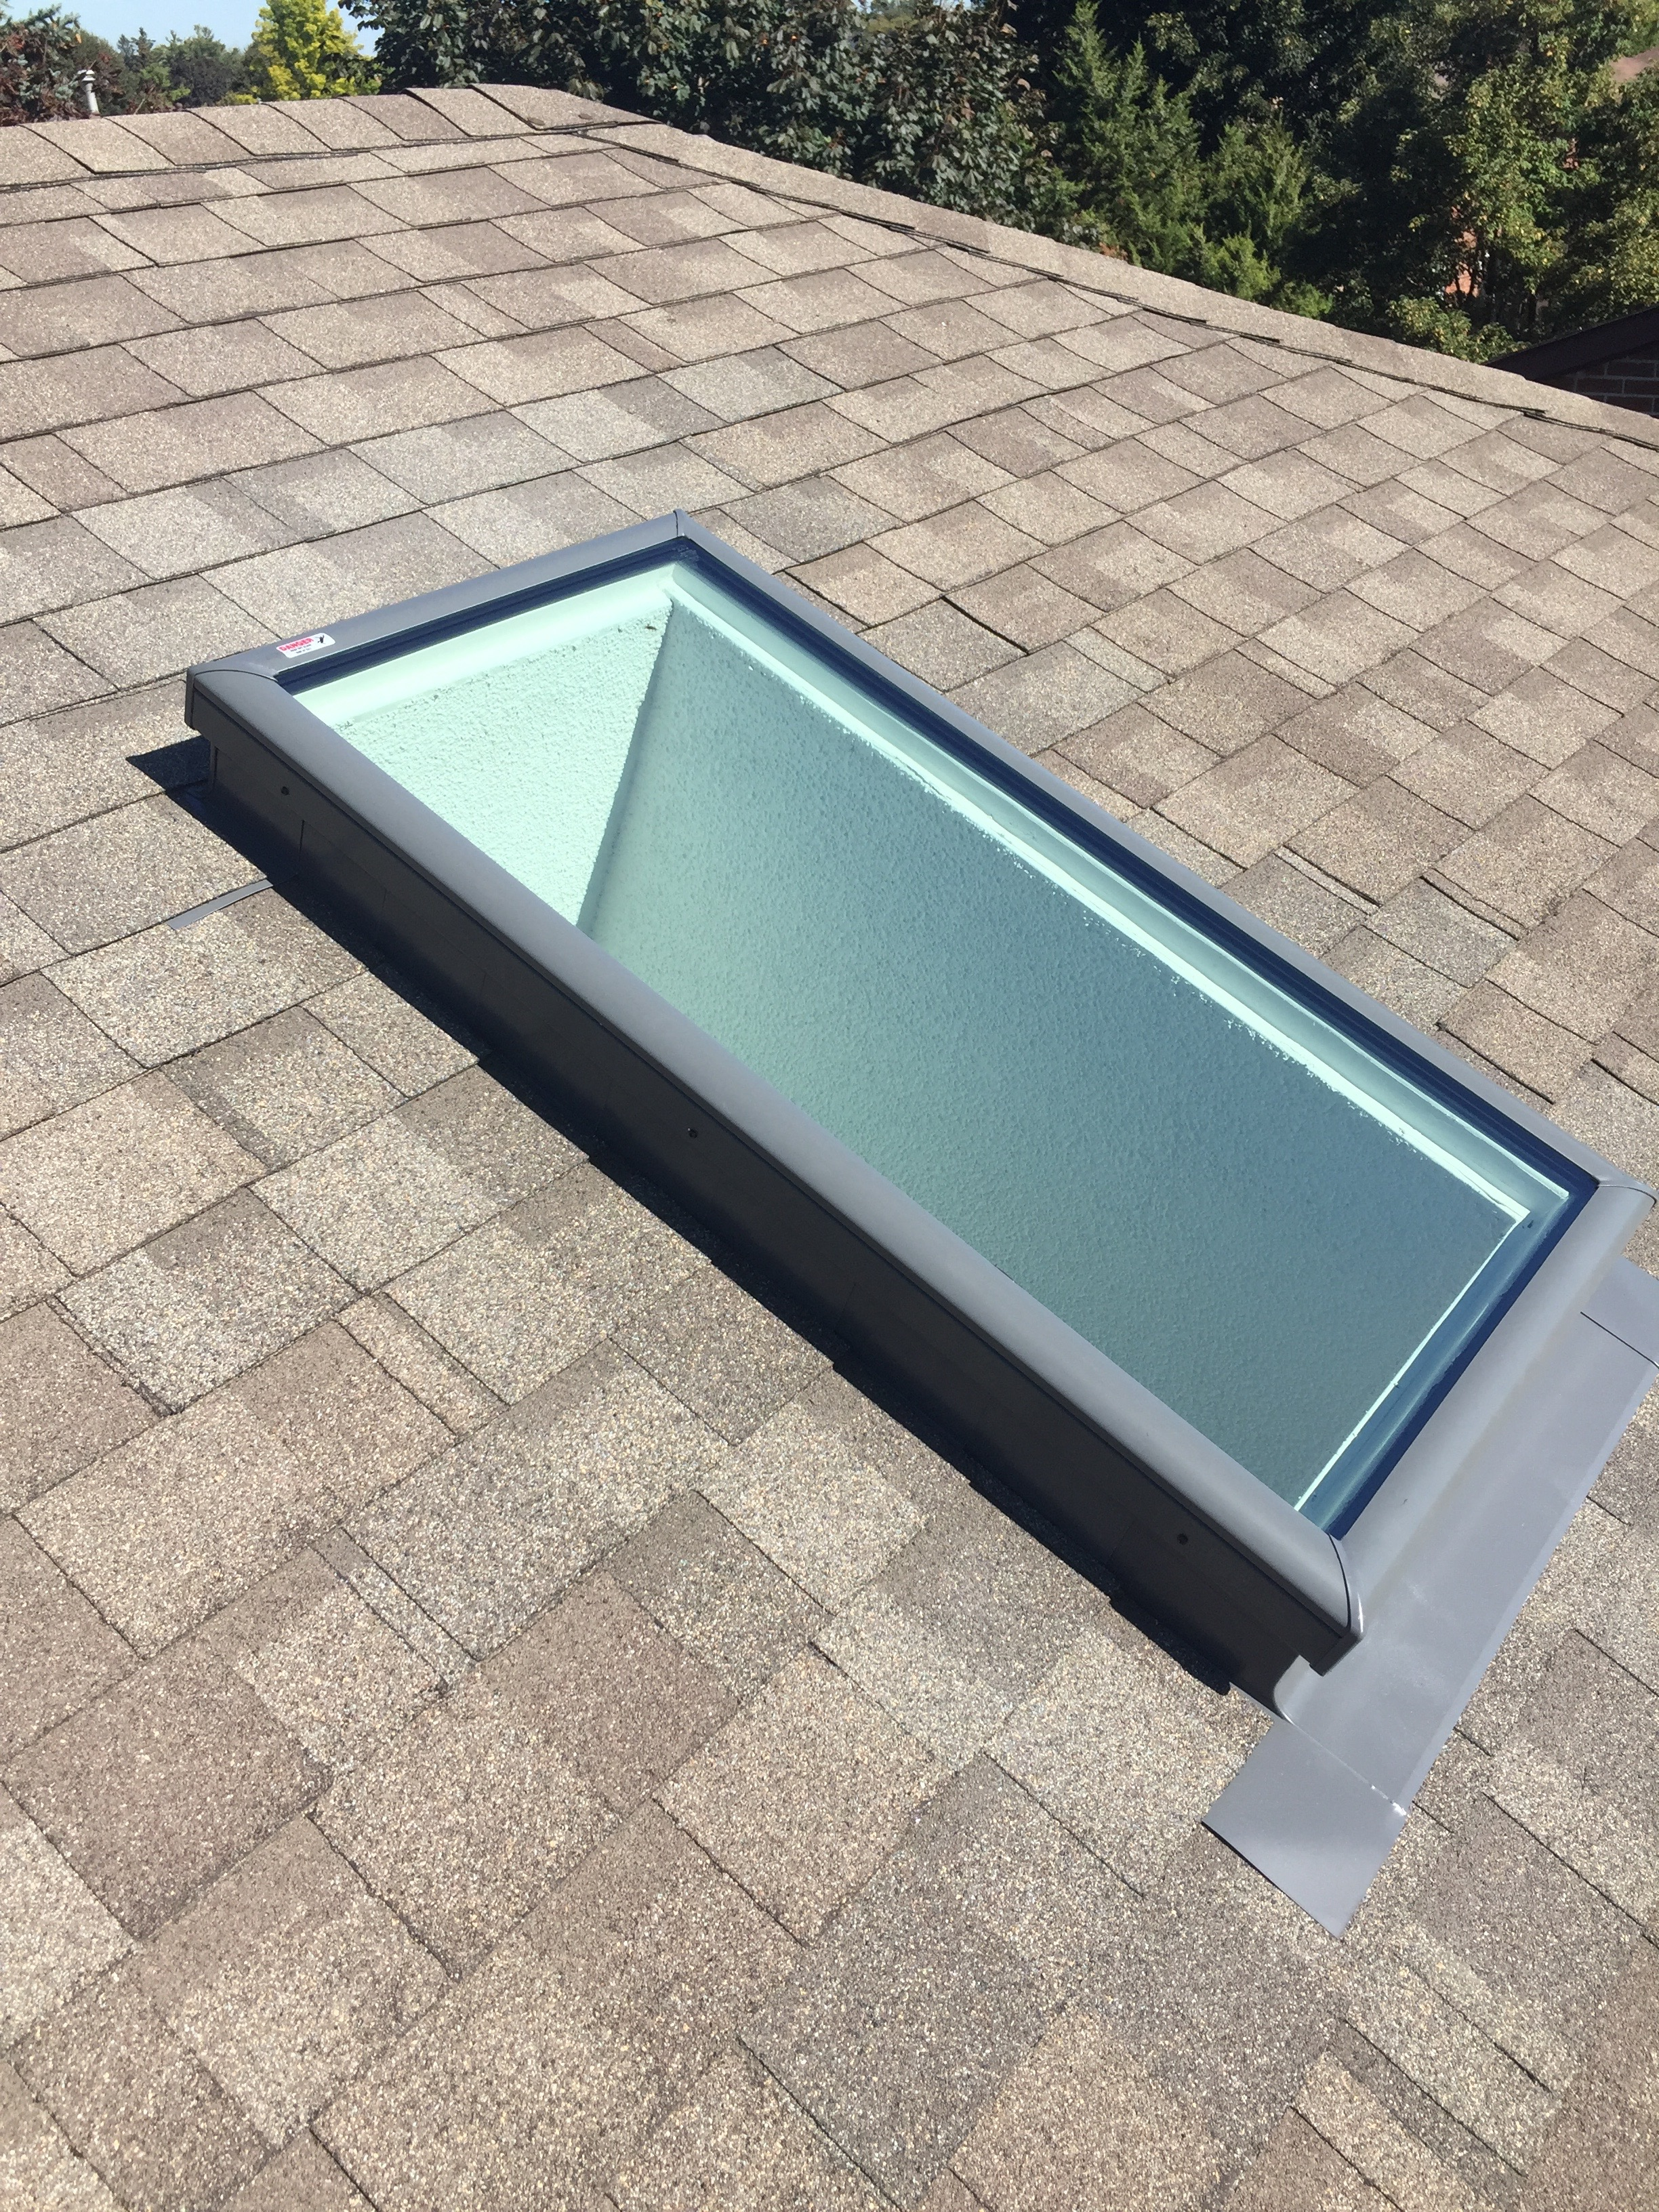 Oshawa Skylight Replacement